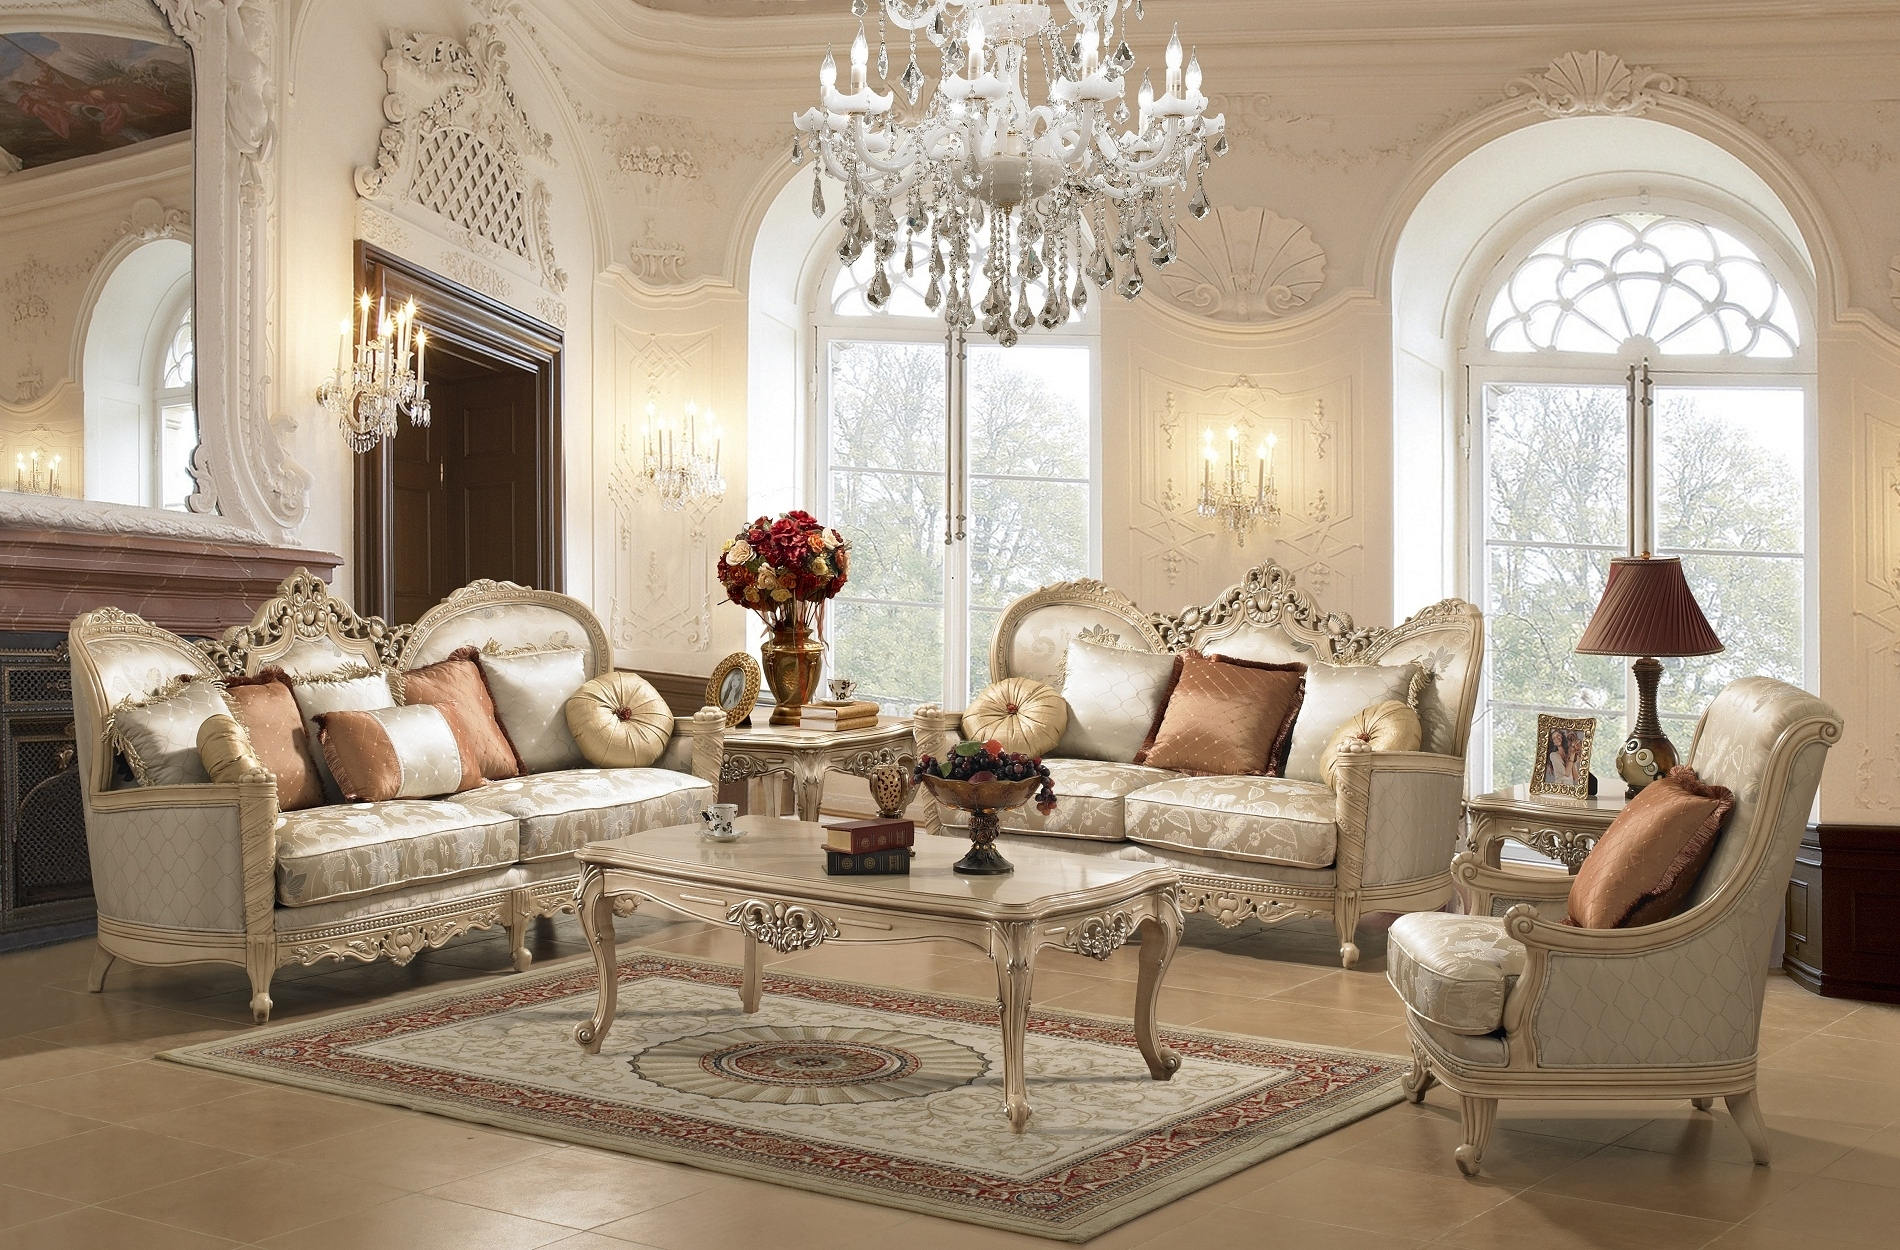 Uncategorized : Elegant Sofas Within Awesome 15 Best Collection Of Within Current Elegant Sofas And Chairs (View 20 of 20)